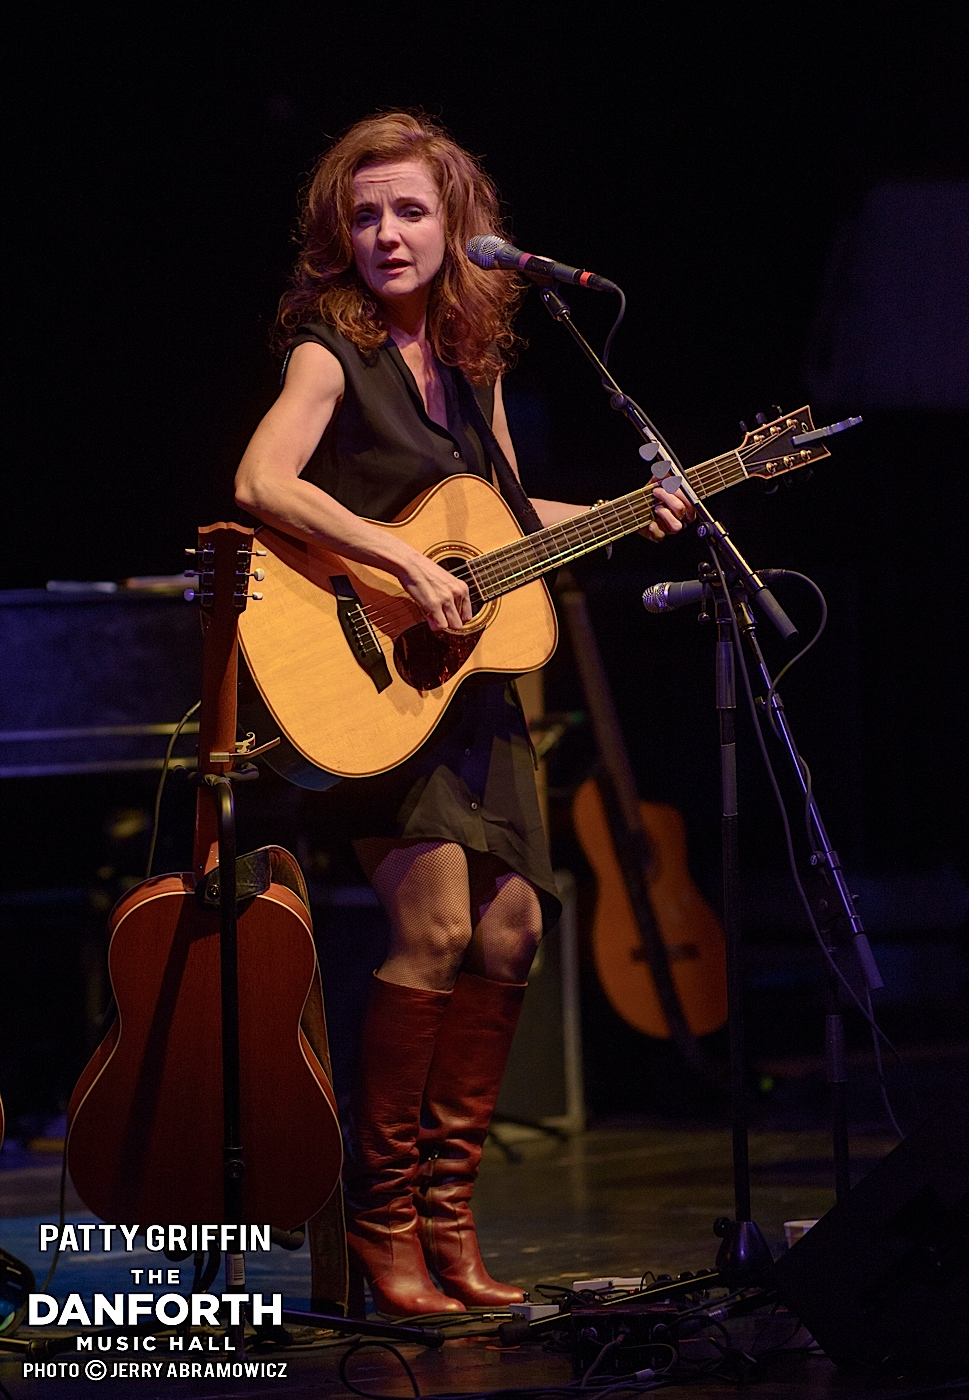 20130611 Patty Griffin performs at The Danforth Music Hall Toronto 0118